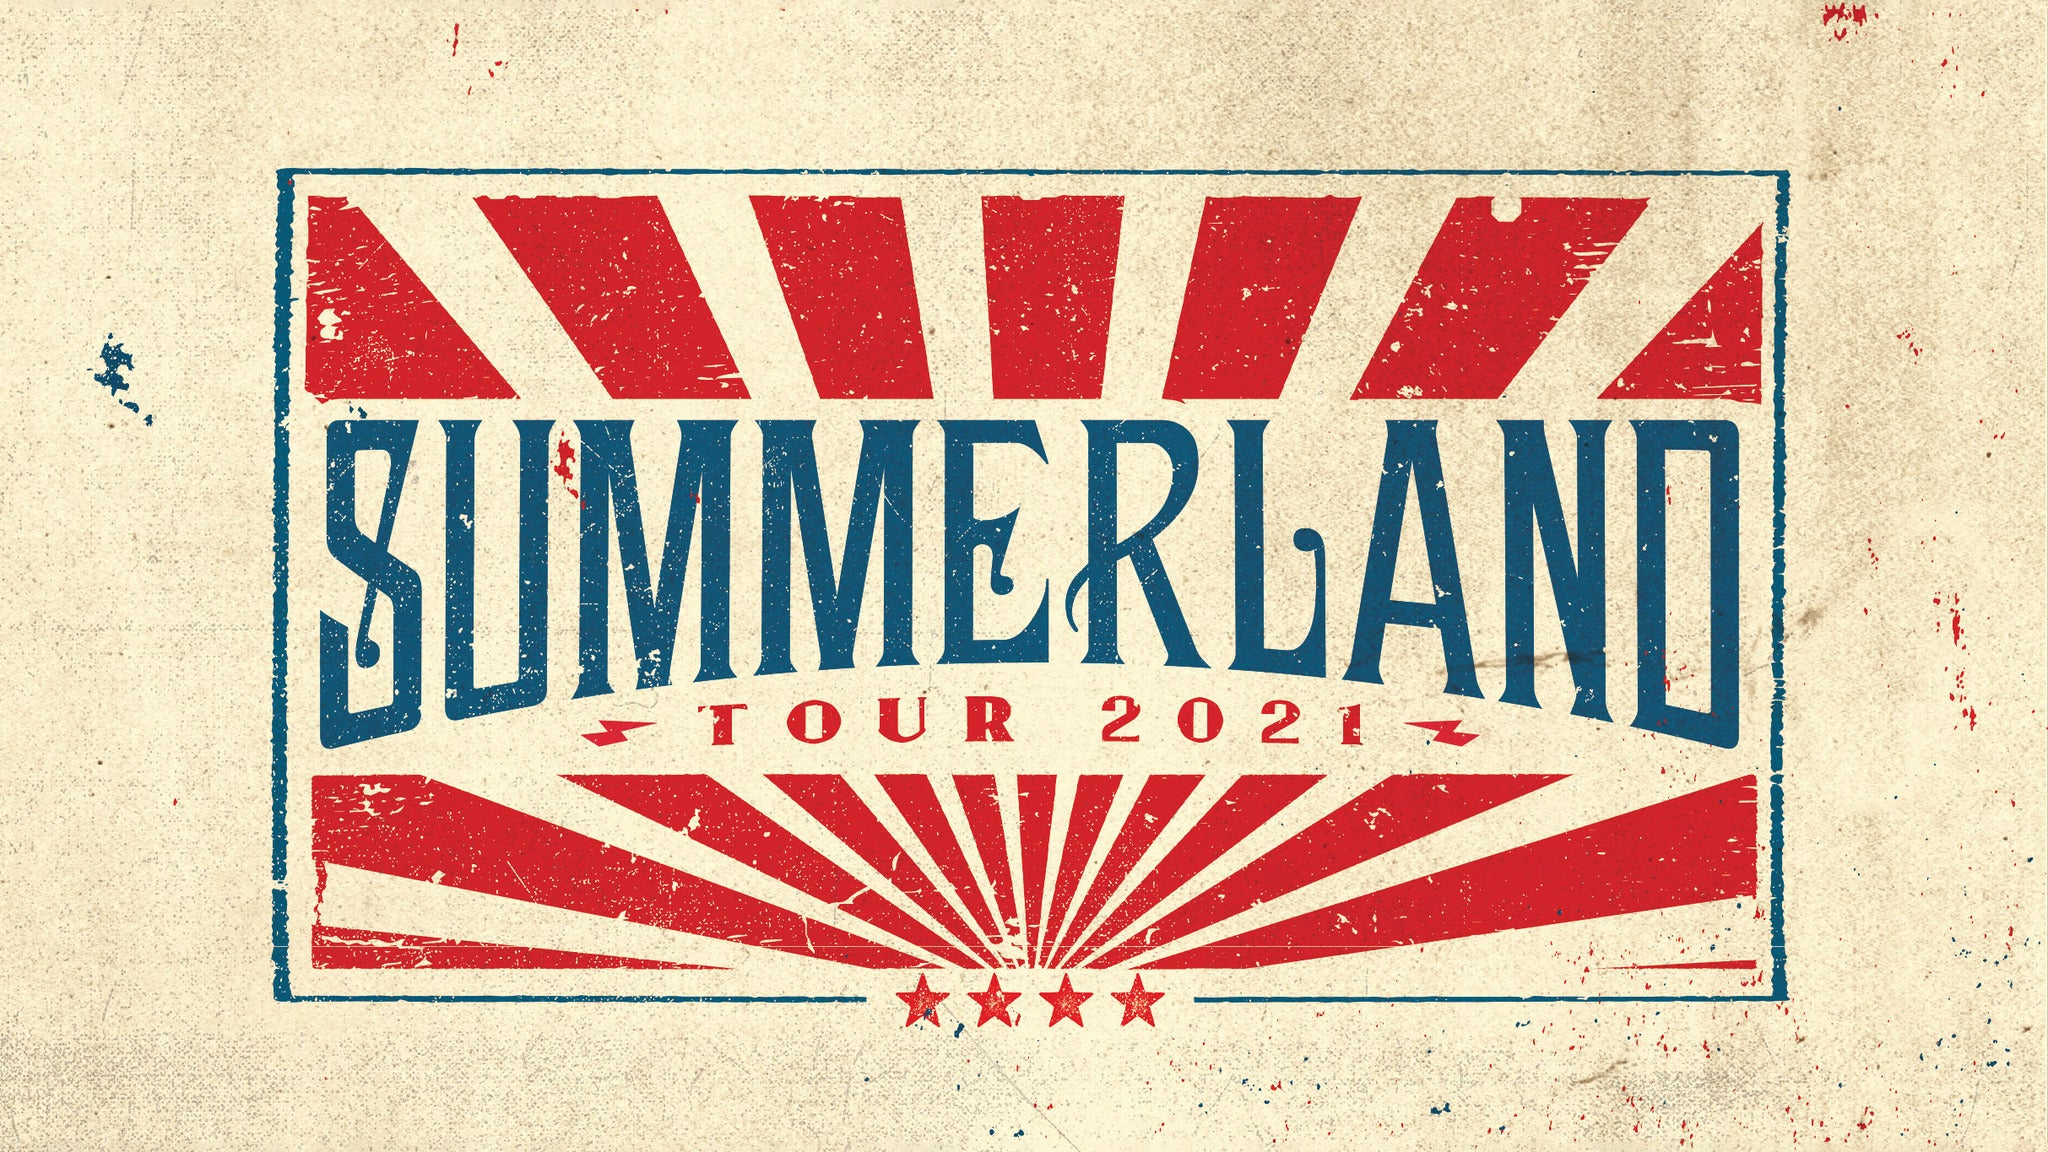 Summerland Tour 2021 Starring Everclear, Living Colour + more presale passcode for early tickets in Cedar Park